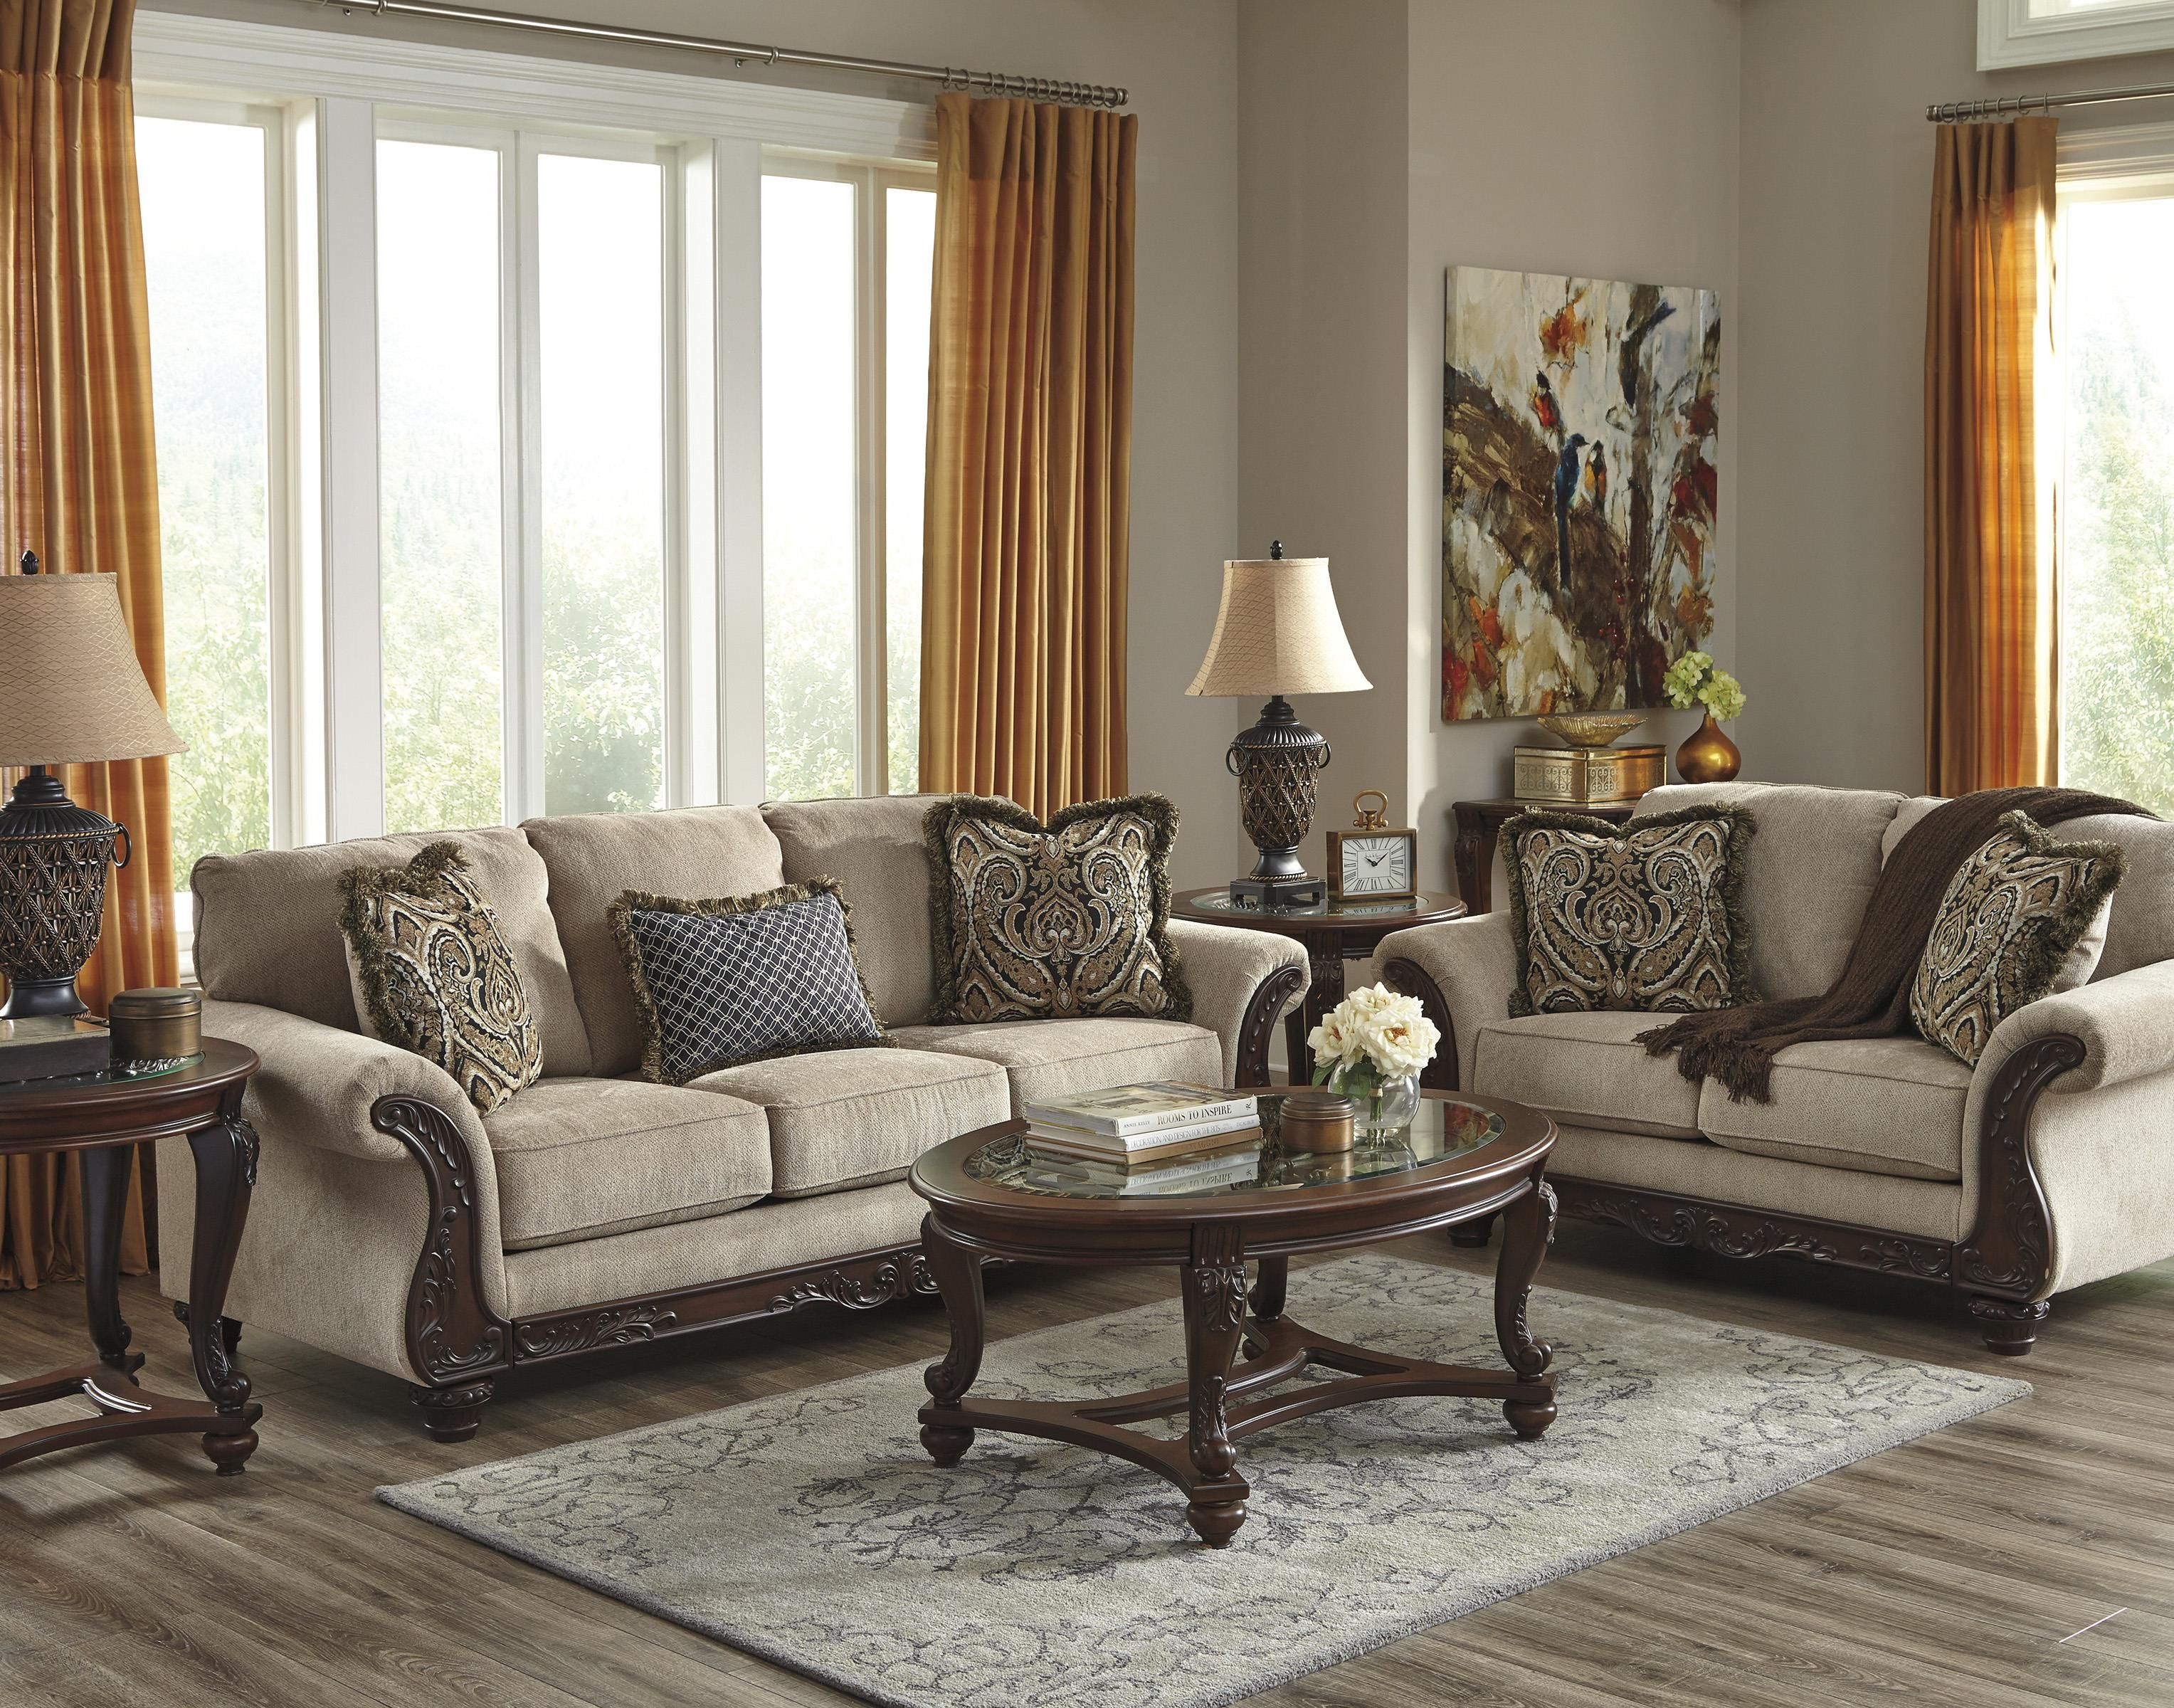 Benchcraft Laytonsville Traditional Sofa With Ornate Rolled Arms Sam S Appliance Furniture Sofa Living Room Sets Furniture Sofa Loveseat Set